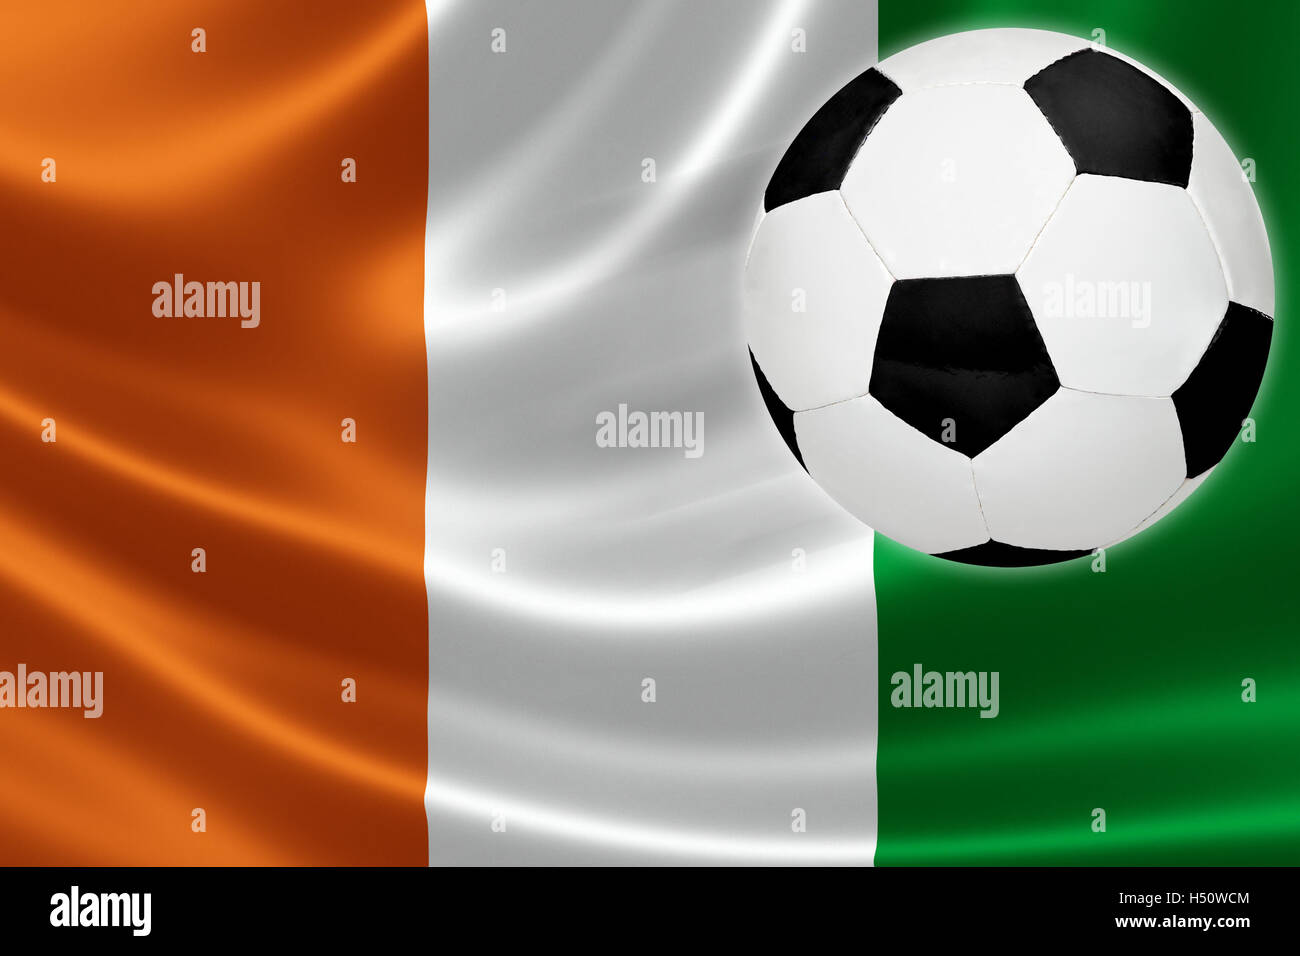 Ball streaks across the flag of Cote d'Ivoire, where soccer is a national passion. - Stock Image